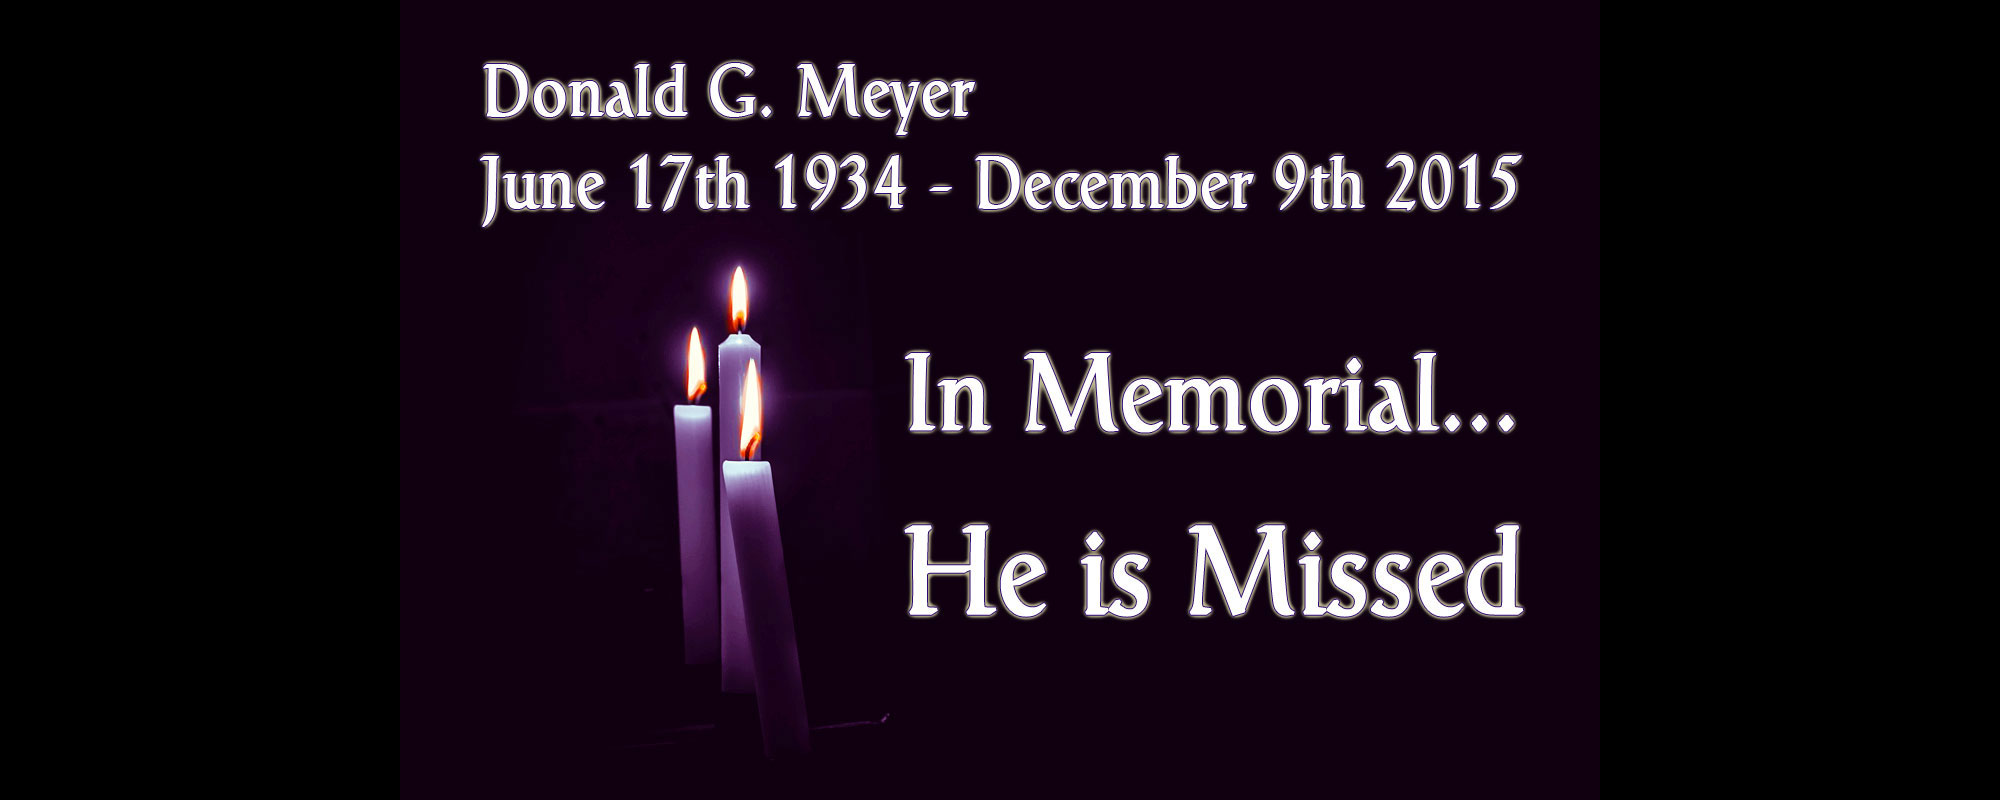 In Memorial- Donald G. Meyer